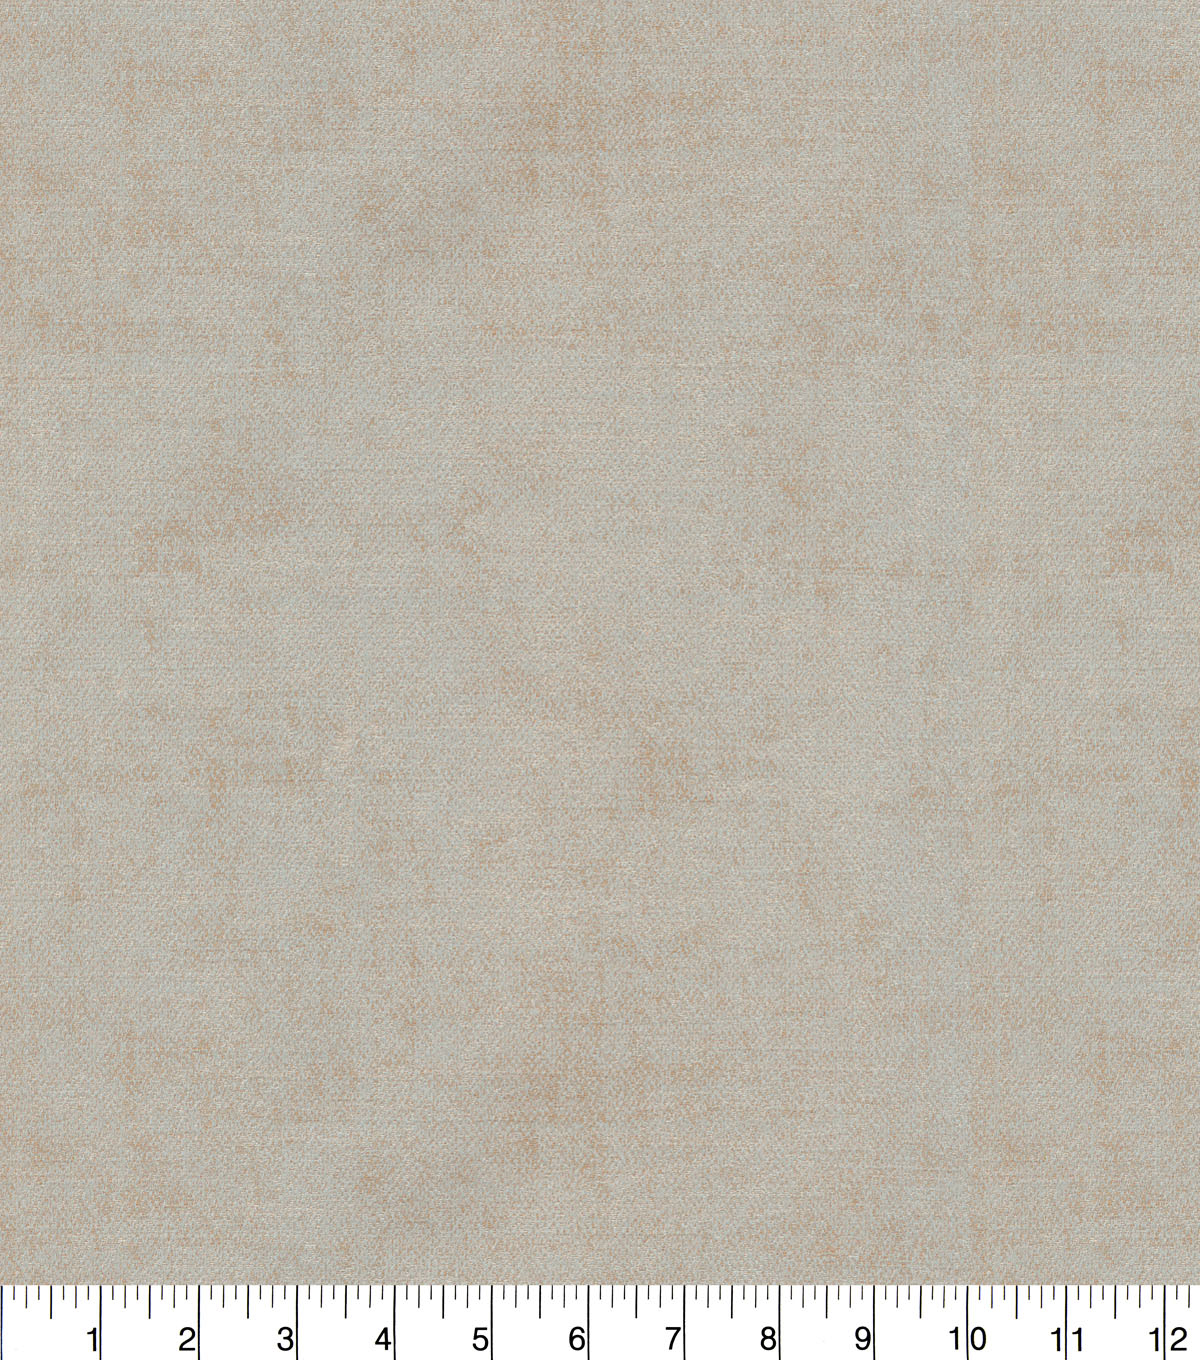 Home Decor 8\u0022x8\u0022 Fabric Swatch-P/K Lifestyles Exposure Patina